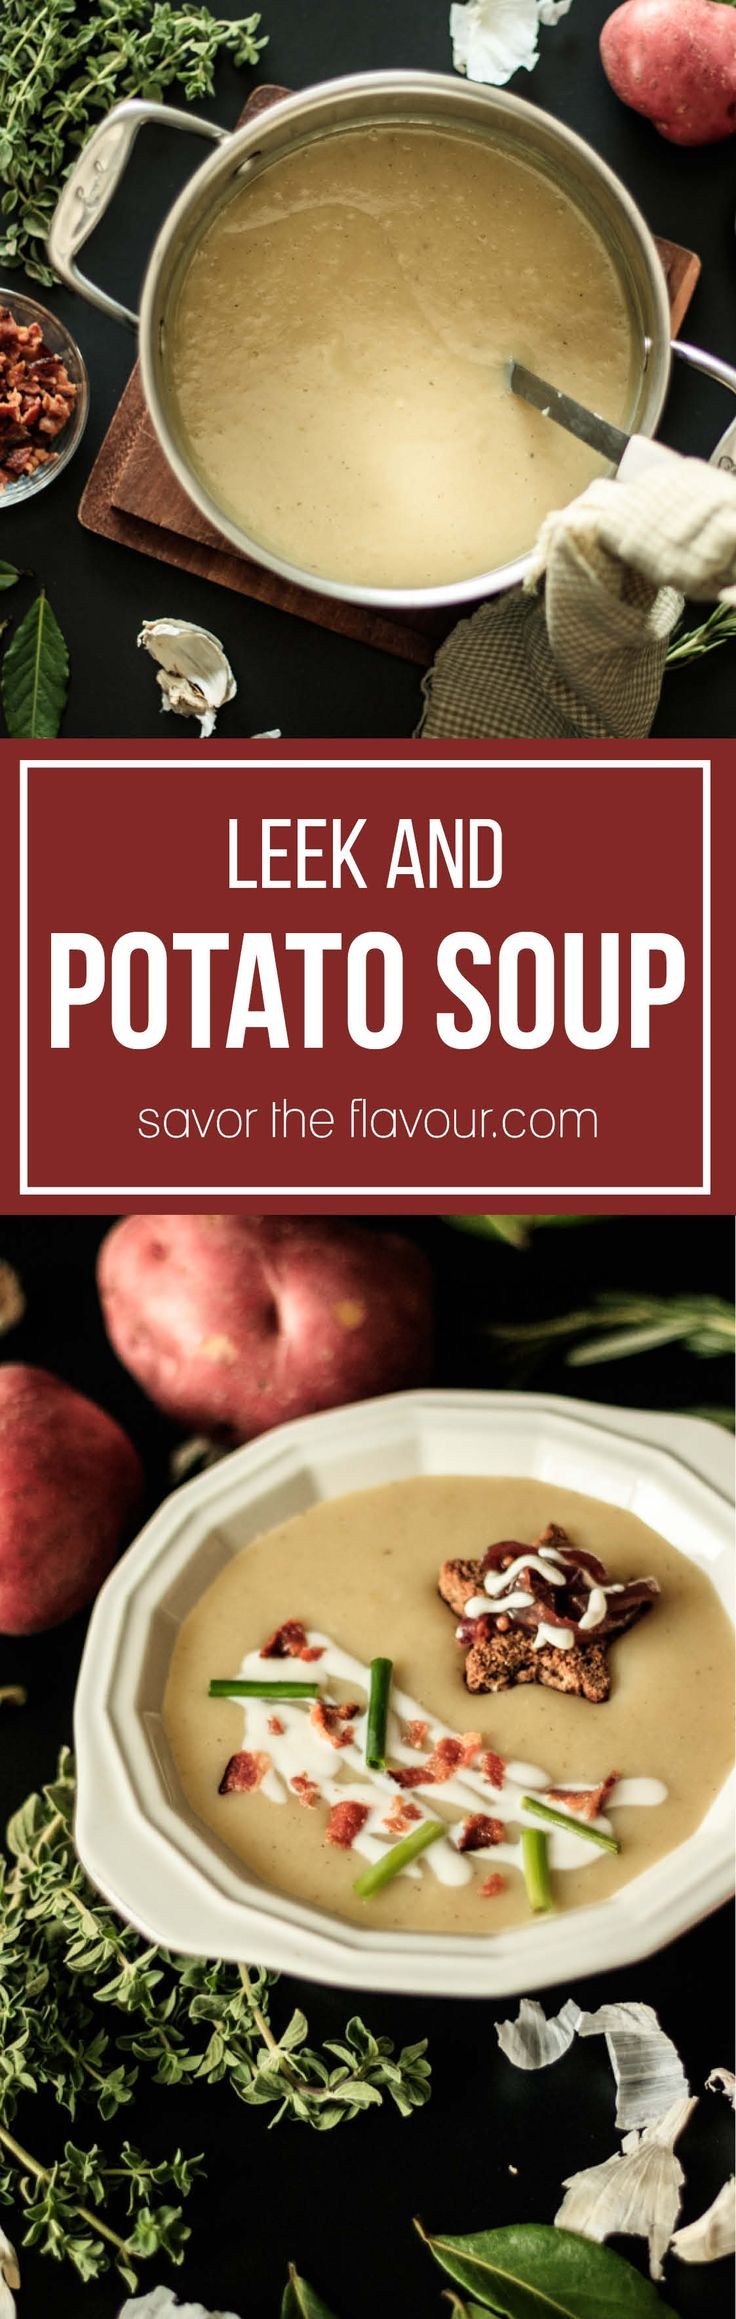 Potato leek soup is an elegant, creamy soup flavored with smoked bacon, garlic, and red potatoes.  It can be easily be dressed up with fancy garnishes like our toast stars.